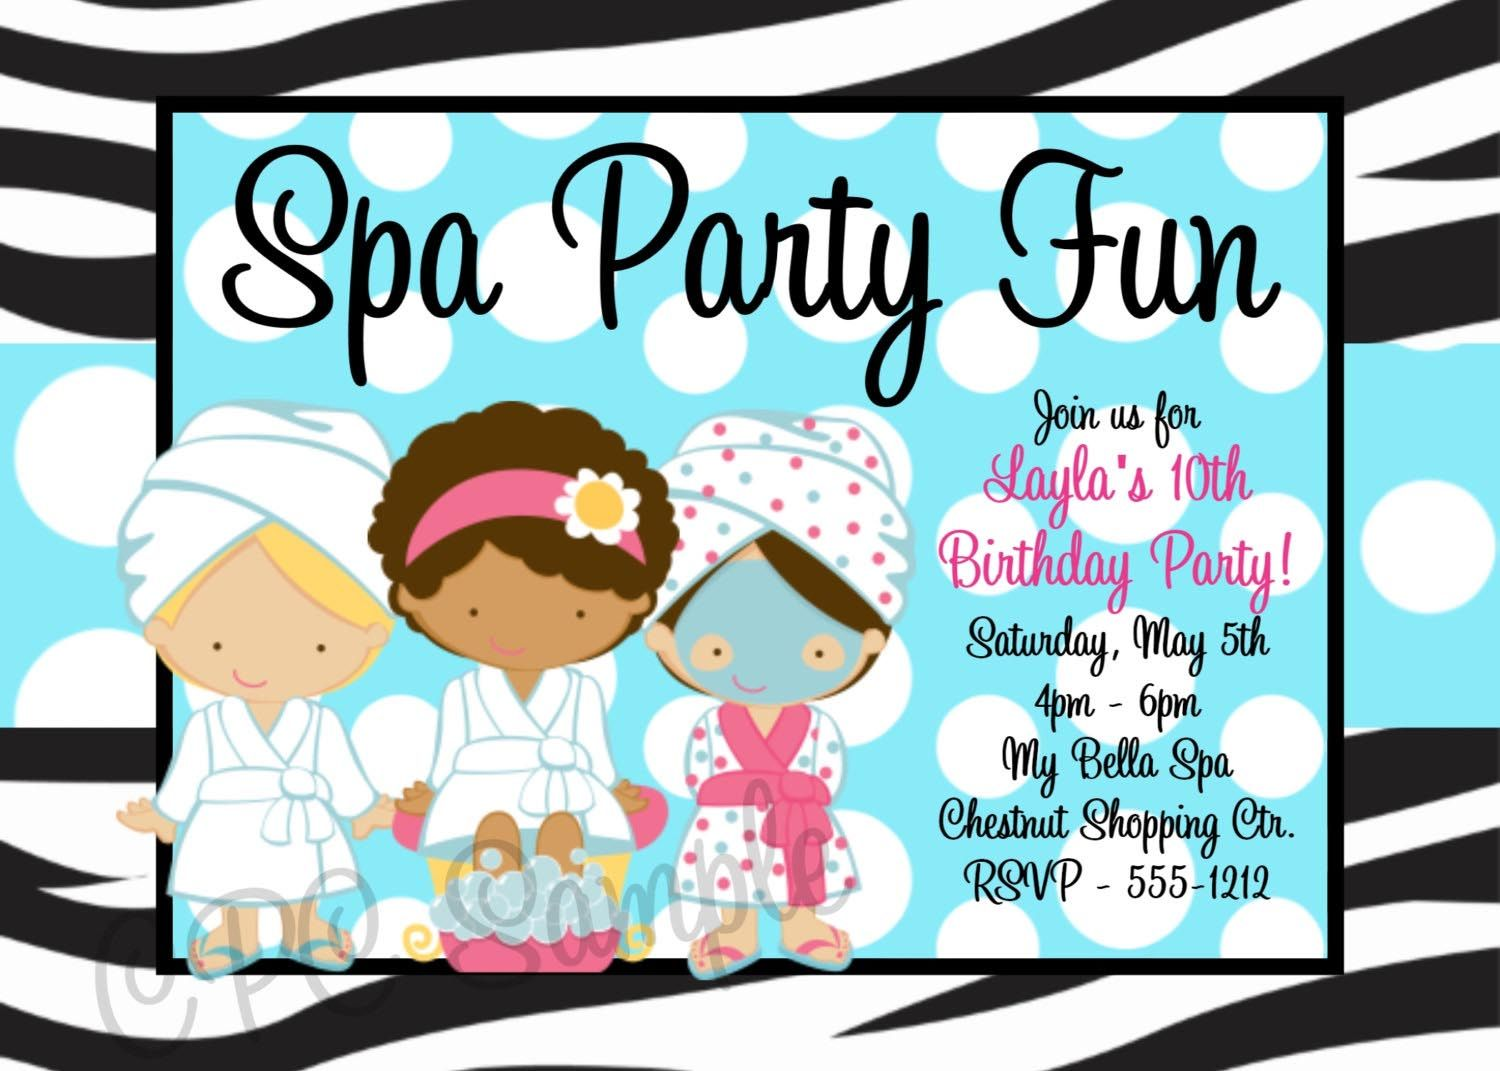 Printable Spa Party Invitations Spa Party Pinterest – Spa Party Invitation Ideas